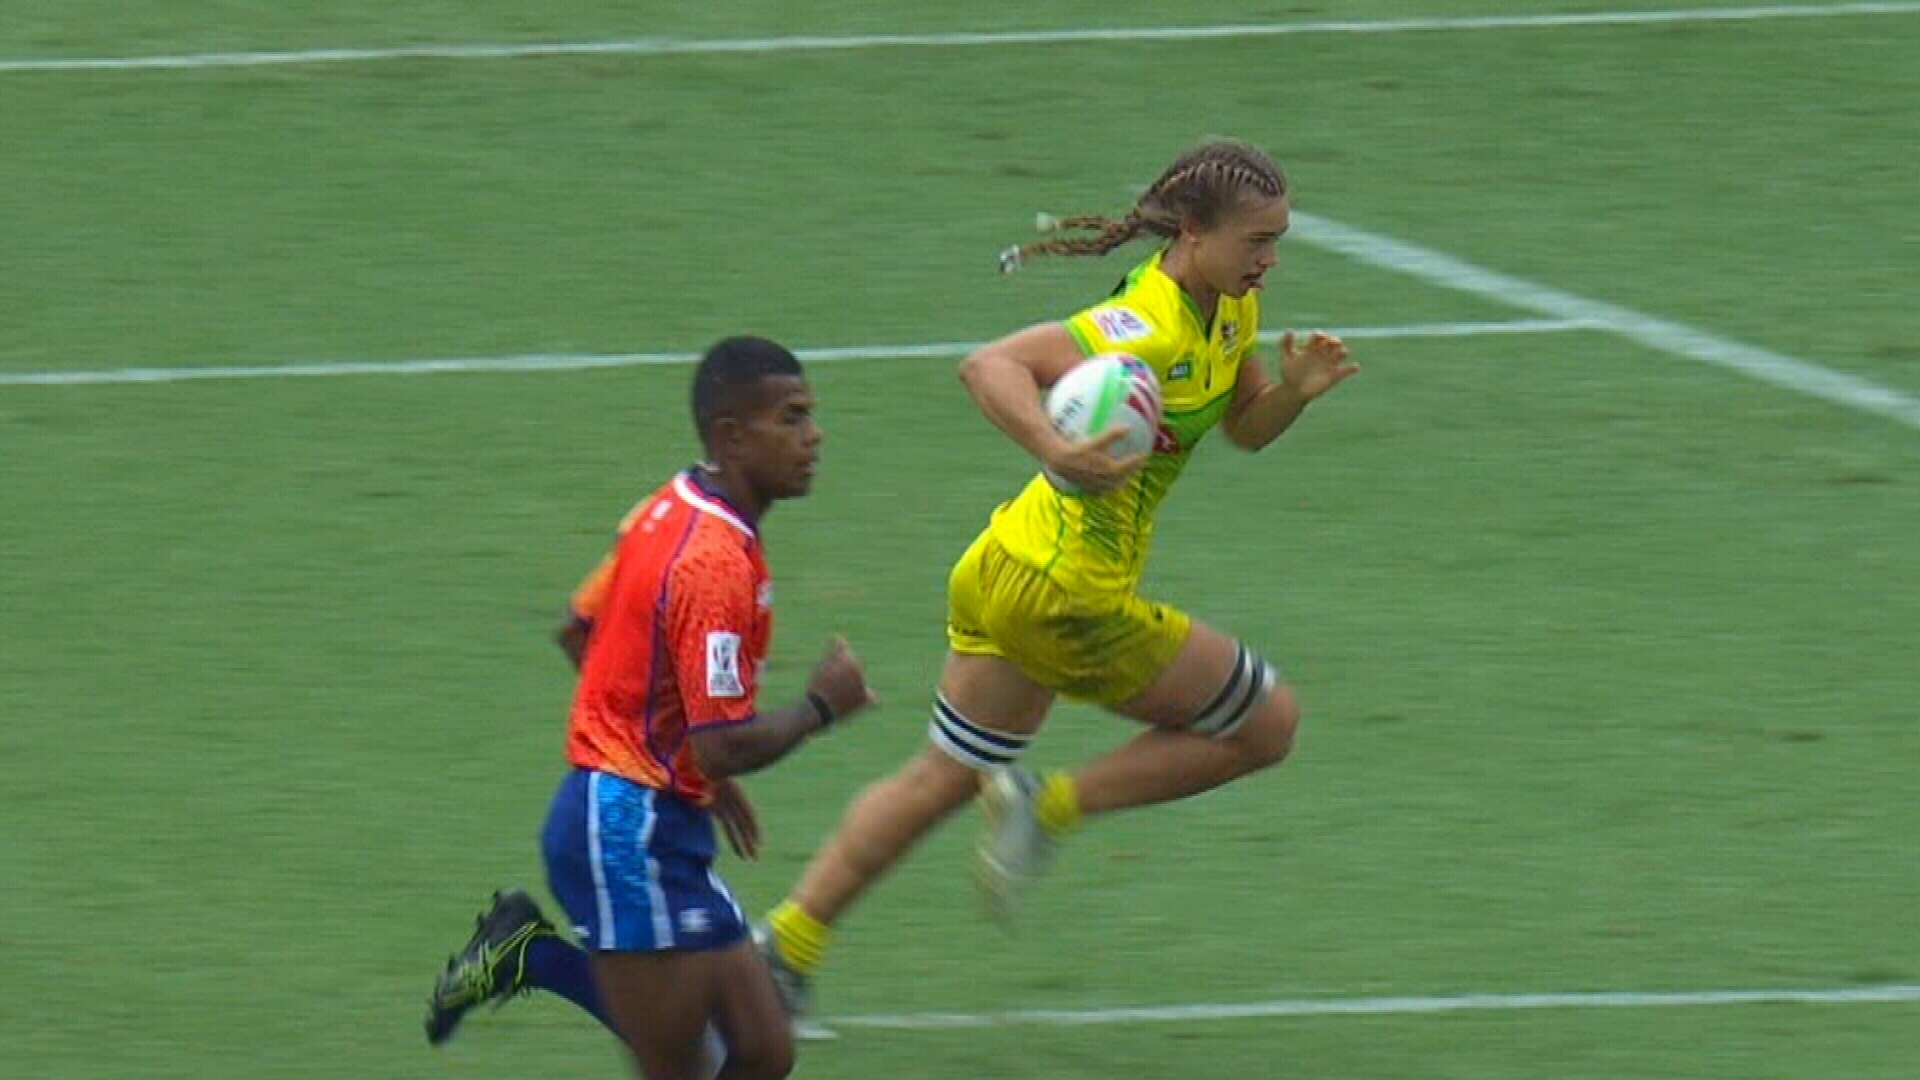 Aussies starring in Sydney Sevens